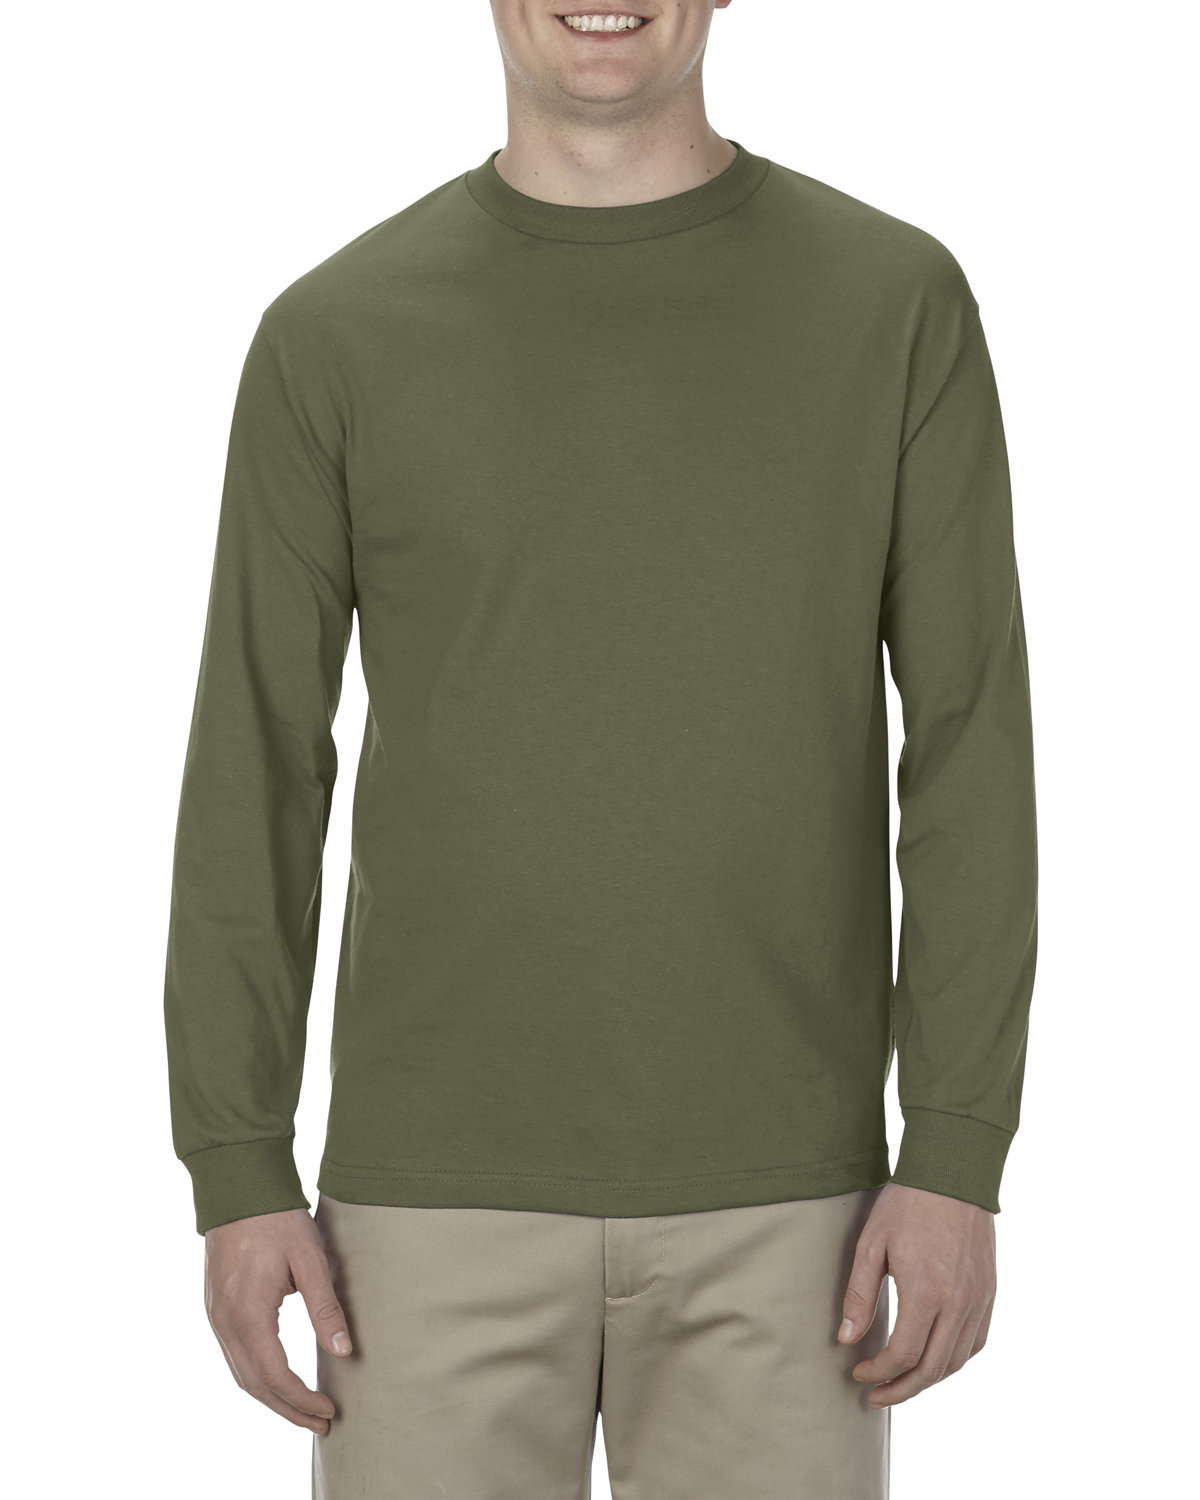 Alstyle Adult 6.0 oz., 100% Cotton Long-Sleeve T-Shirt MILITARY GREEN